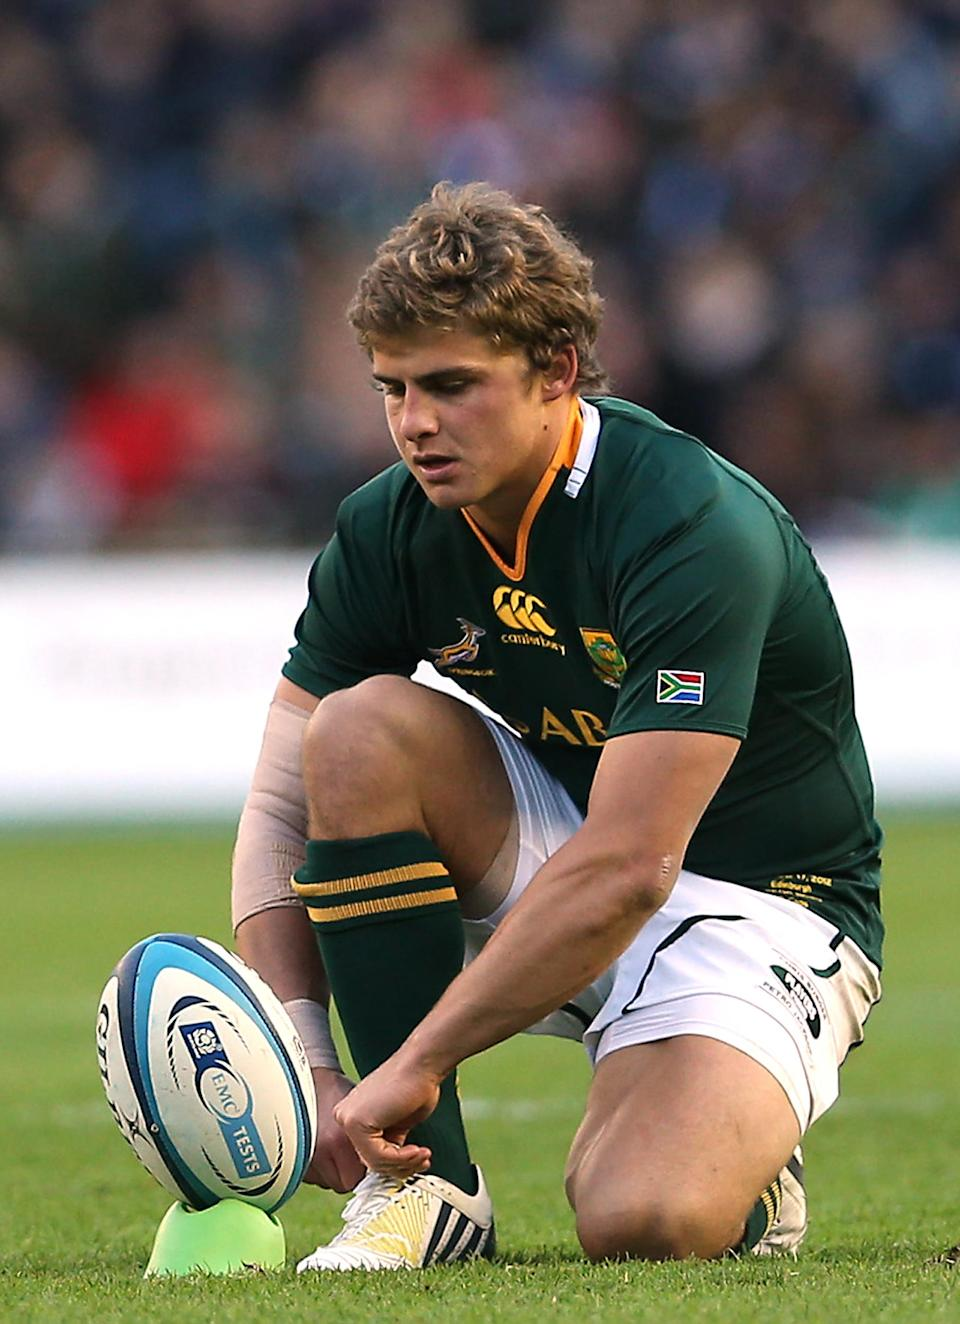 South Africa's Patrick Lambie prepares to kick a penalty during a rugby union Test match at Murrayfield in Edinburgh, on November 17, 2012 (AFP Photo/Ian Macnicol)